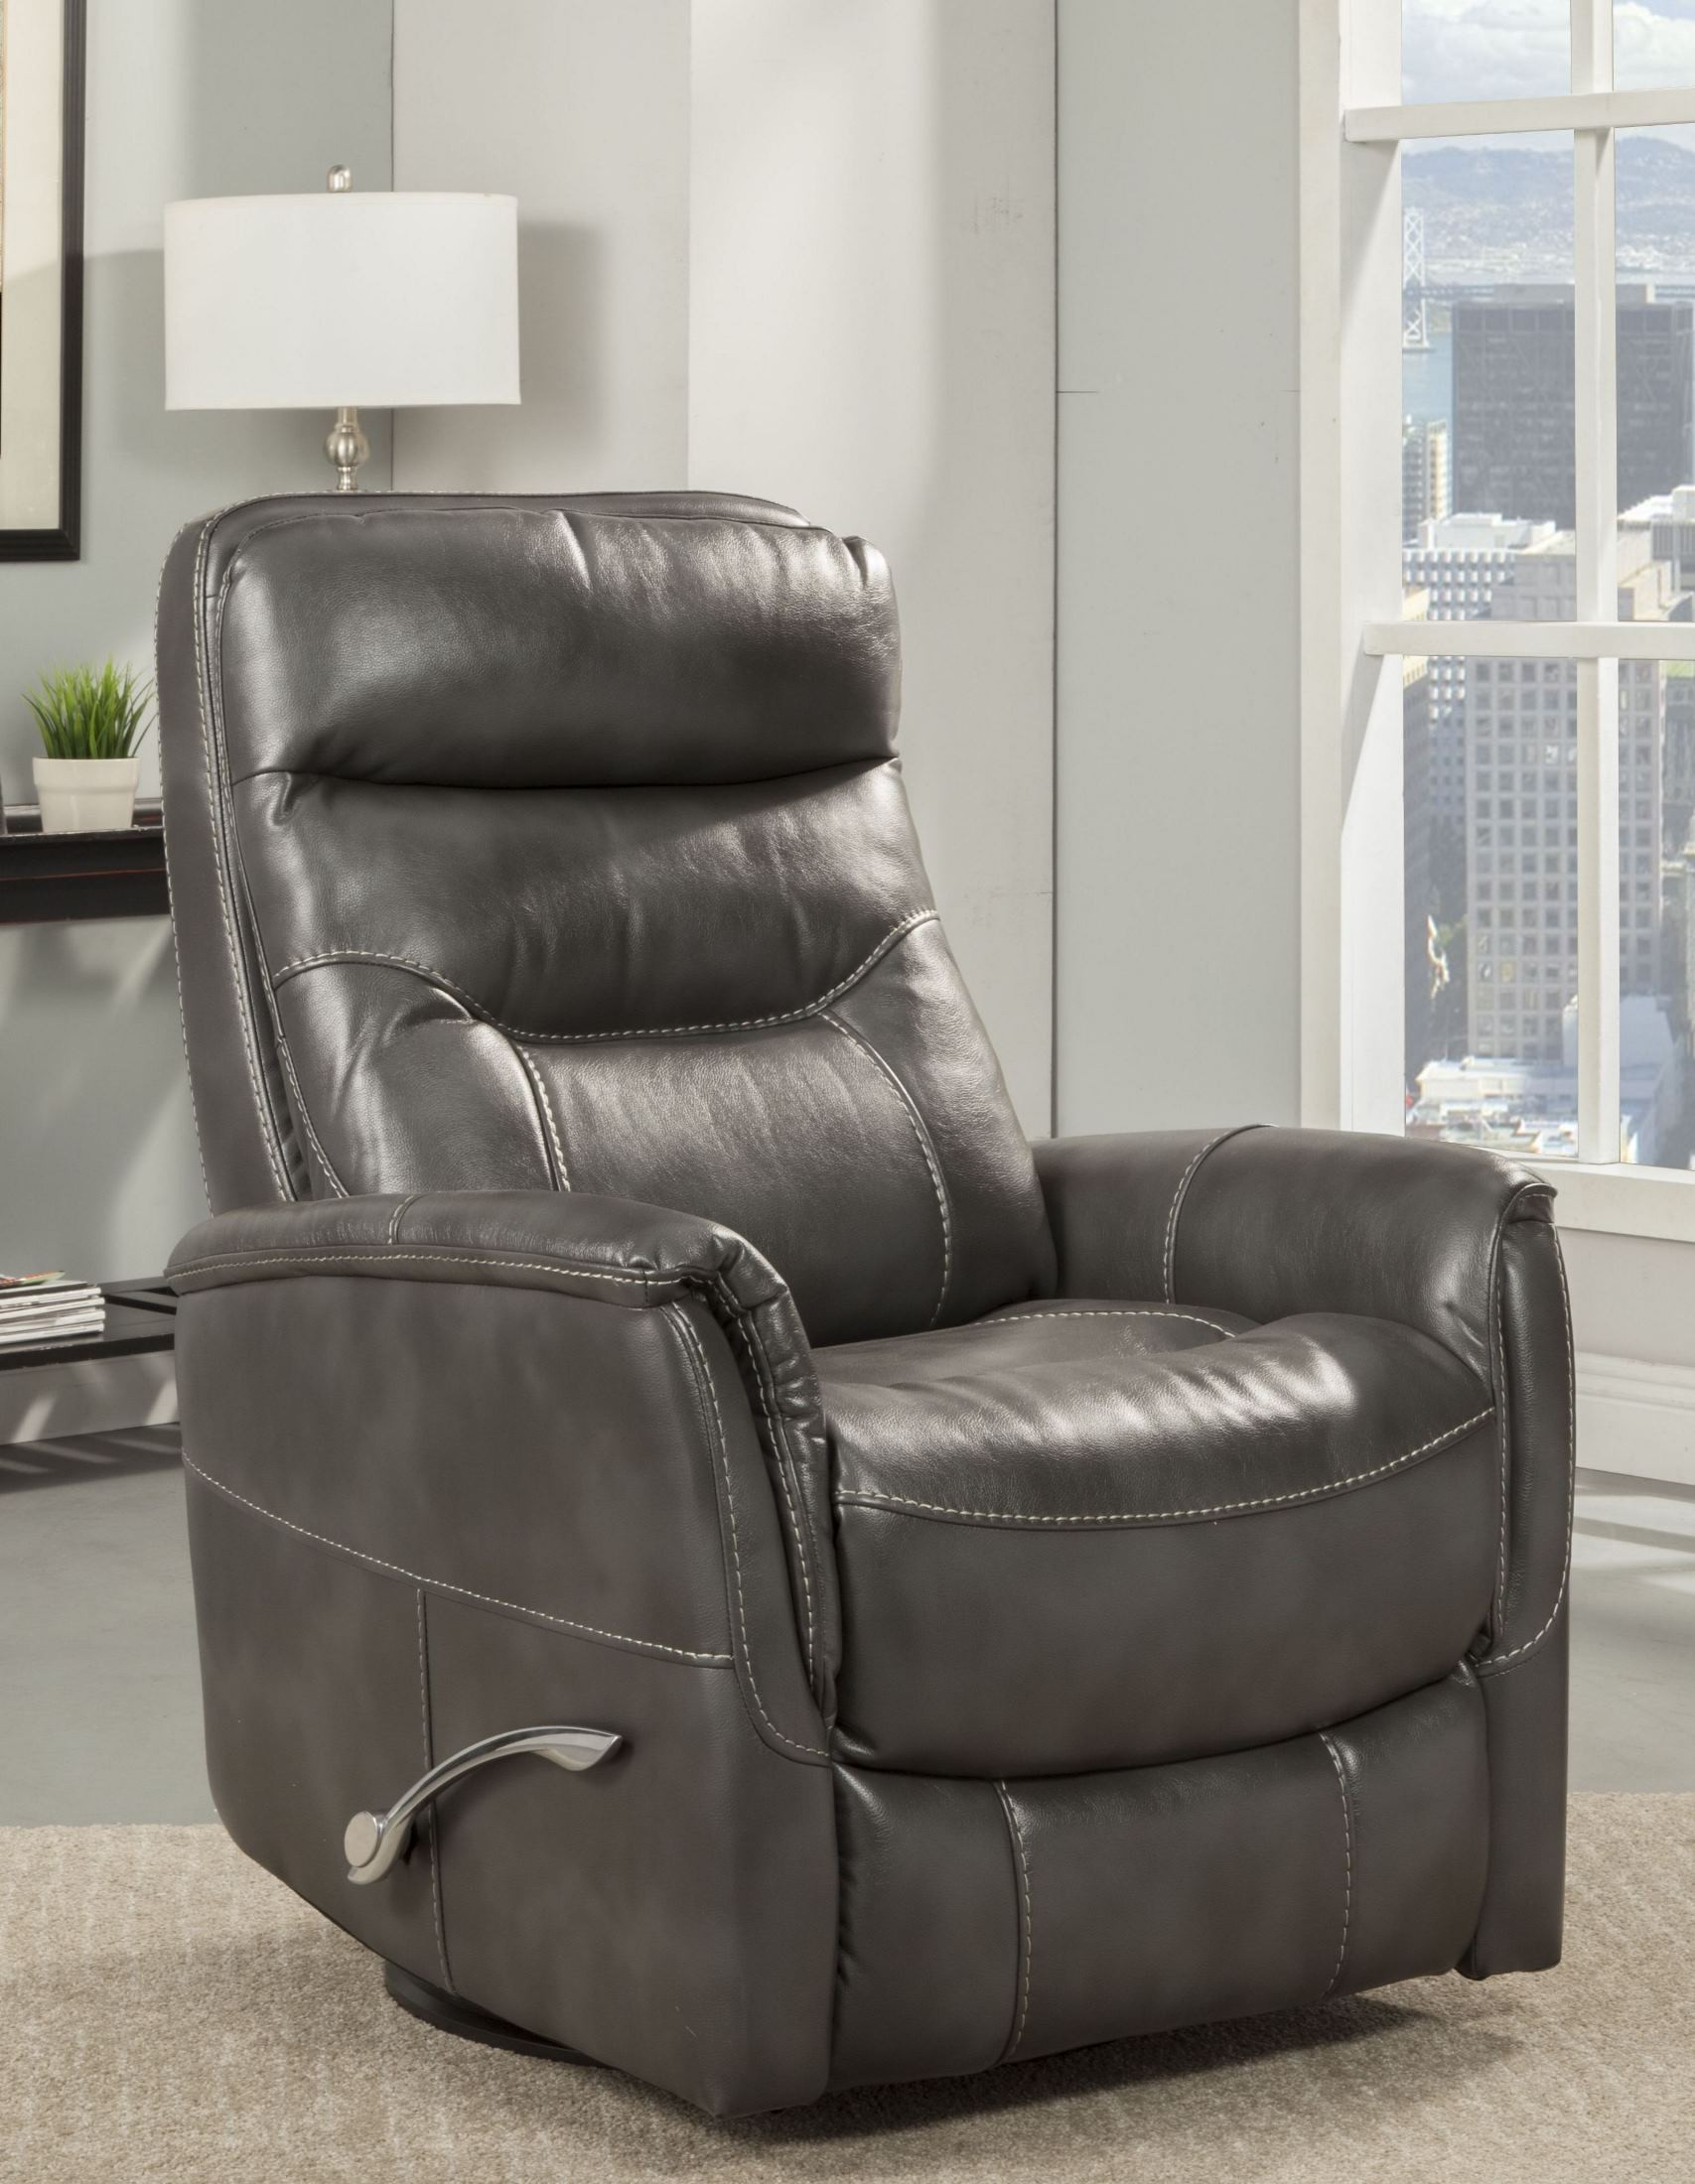 Gemini Flint Swivel Glider Recliner From Parker Living | Coleman in Hercules Oyster Swivel Glider Recliners